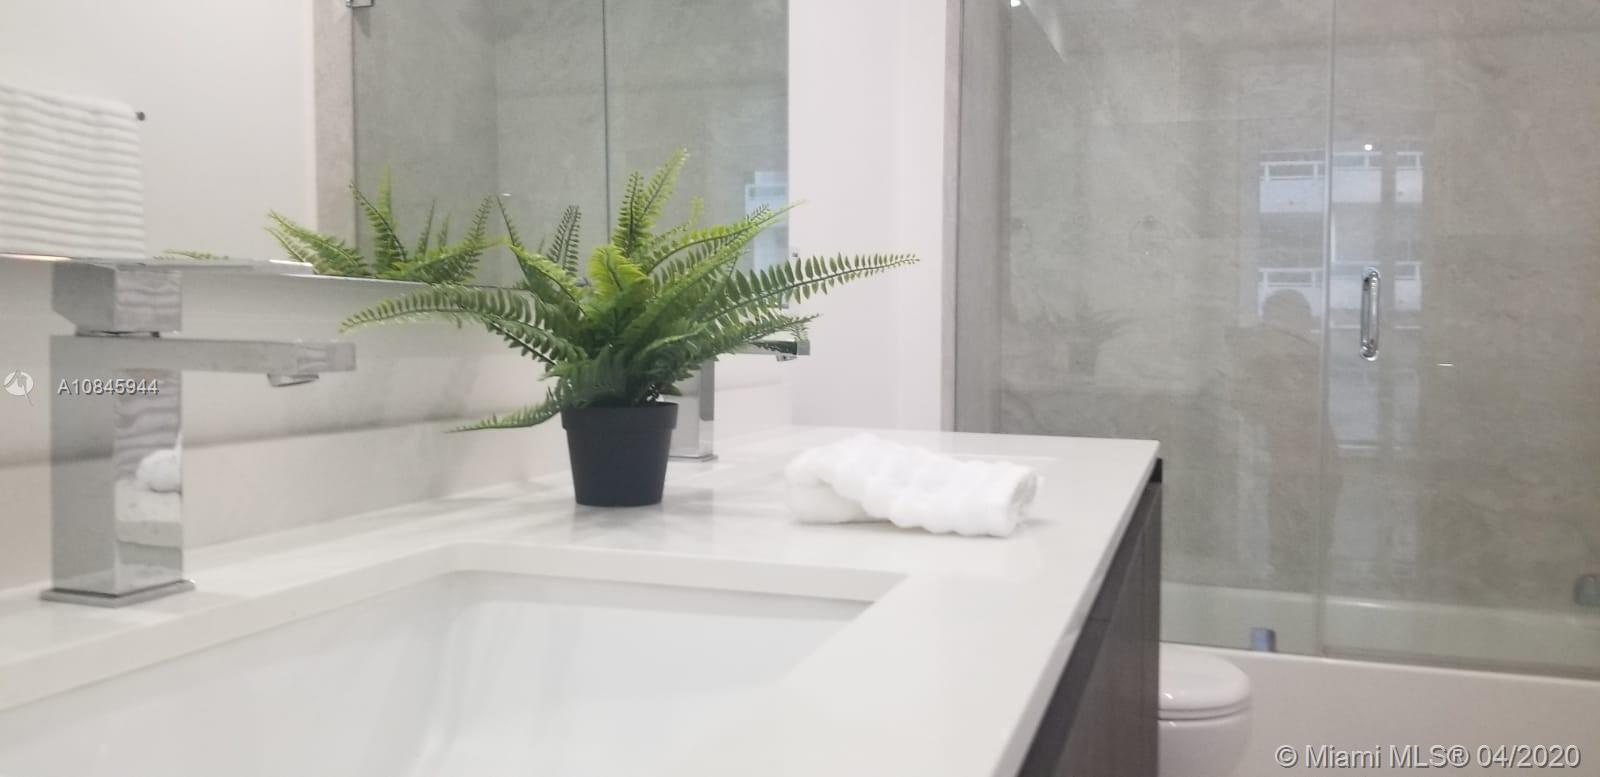 488 NE 18th St # 509, Miami, Florida 33132, 2 Bedrooms Bedrooms, ,3 BathroomsBathrooms,Residential,For Sale,488 NE 18th St # 509,A10845944